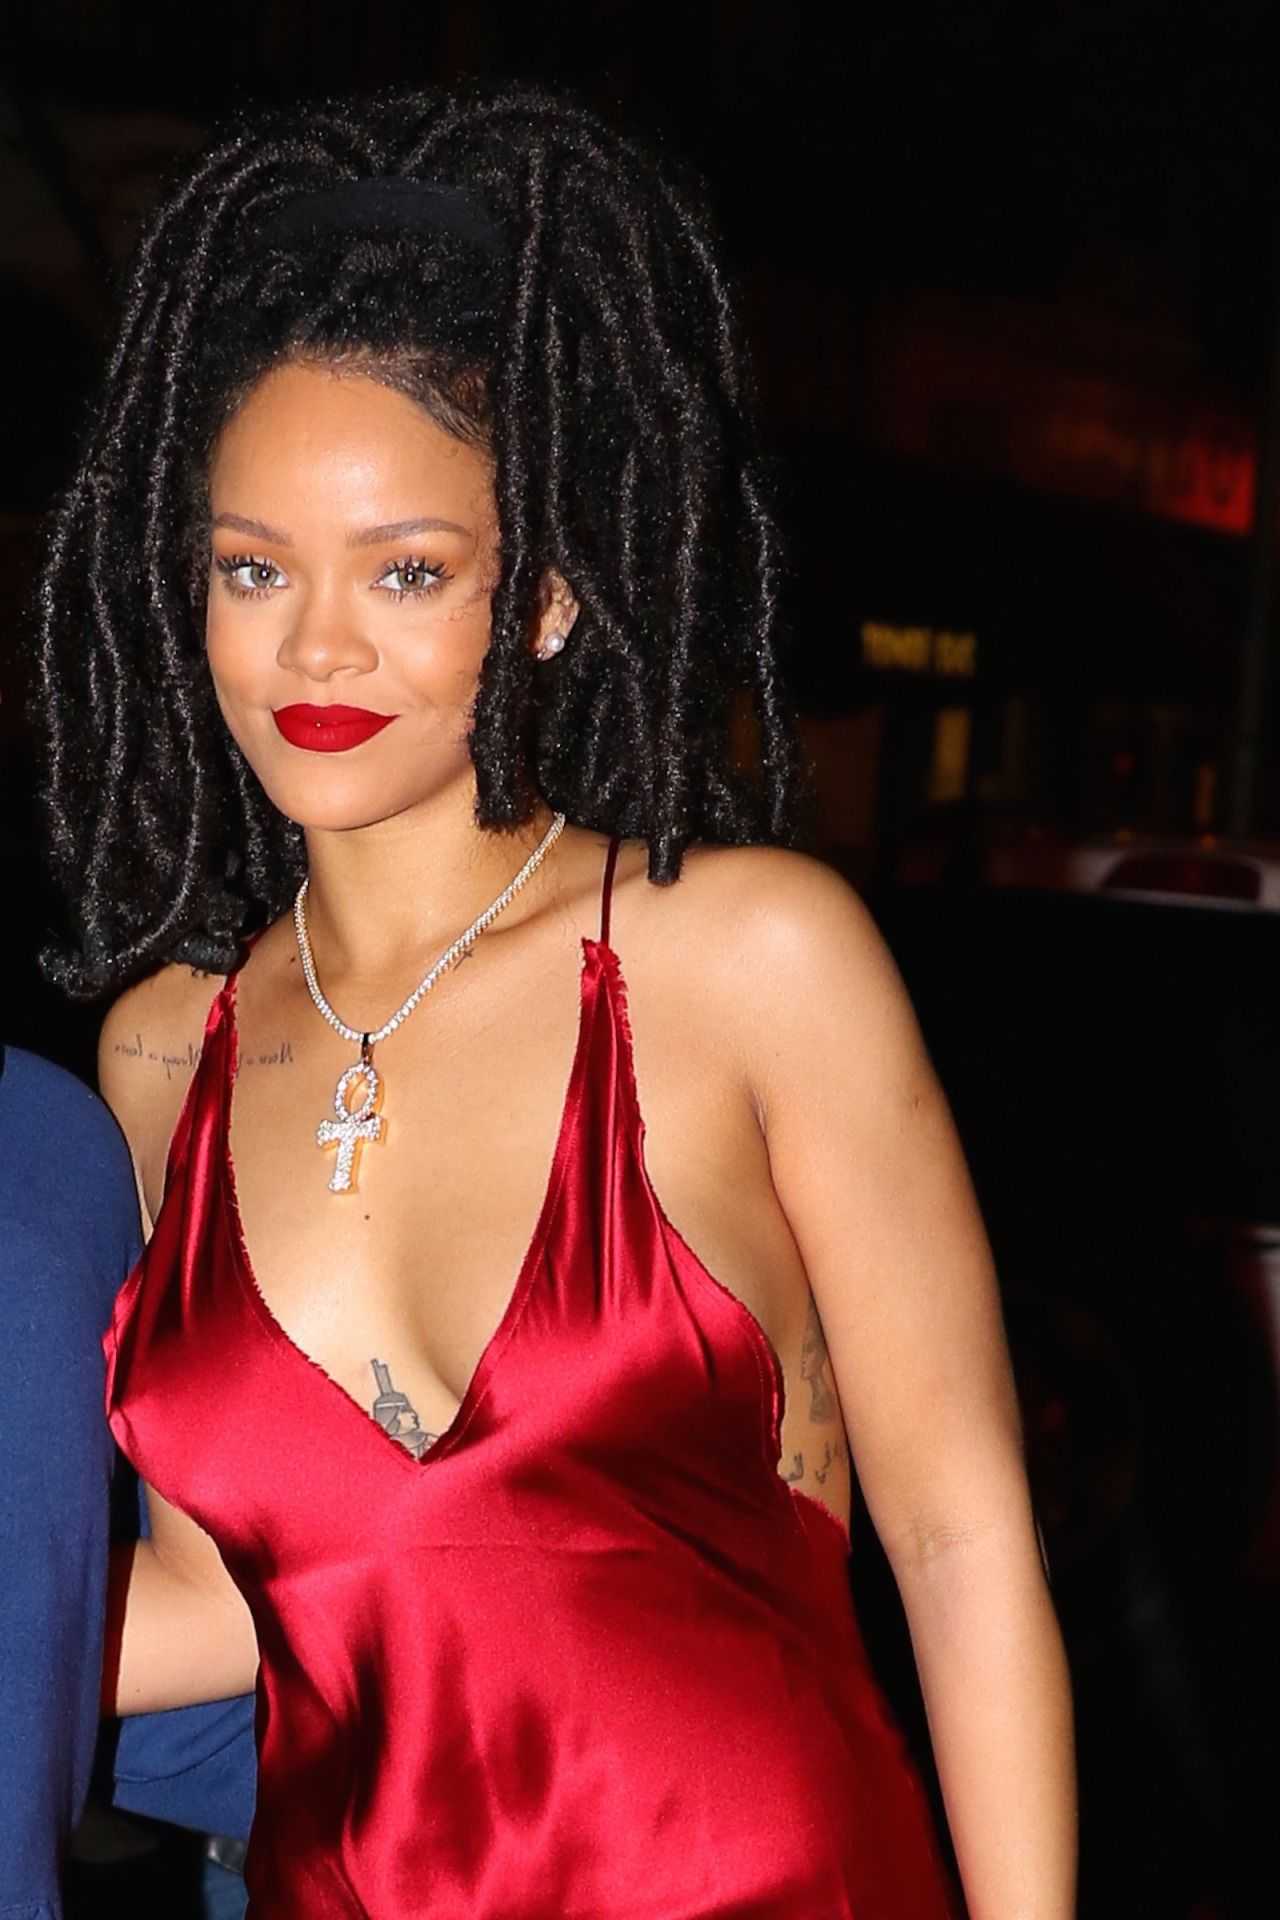 rihanna new hairstyle : Rihanna Night Out Style ? Arriving at Carbone Restaurant in New York ...